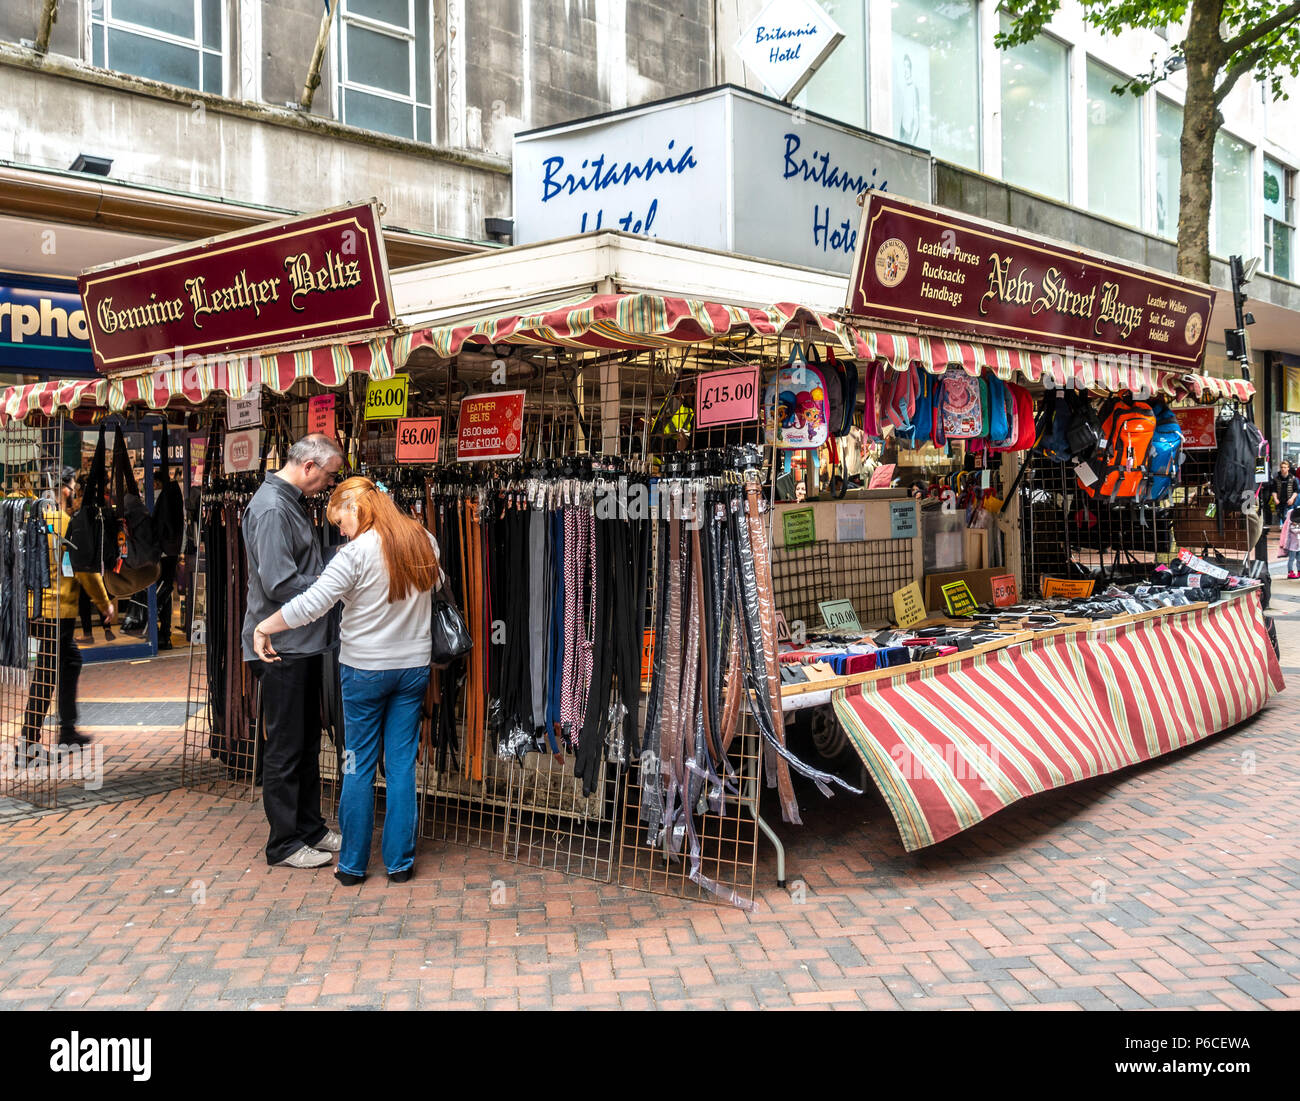 Customers examining leather belts at the New Street Bags trading stall in Mew Street, Birmingham City Centre, West Midlands, England, UK - Stock Image